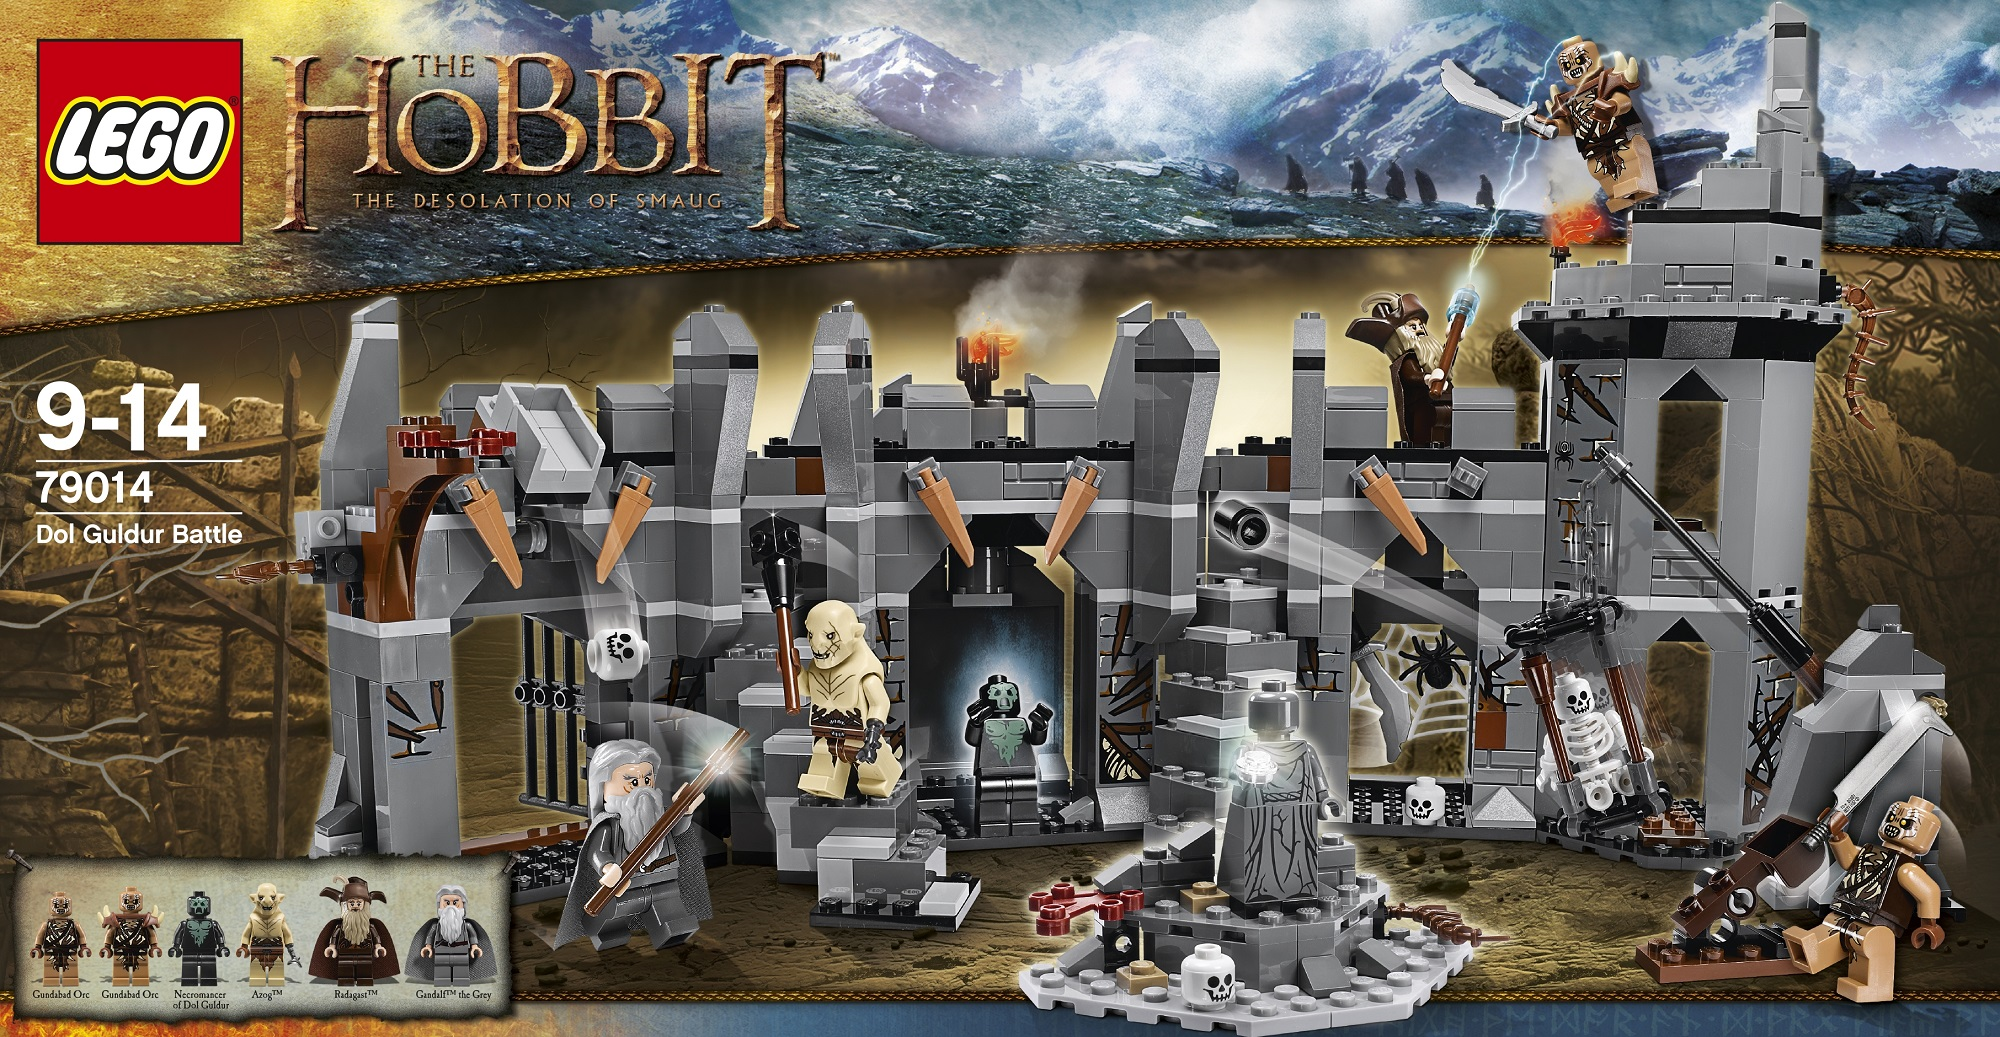 lego der hobbit 79014 schlacht von dol guldur ebay. Black Bedroom Furniture Sets. Home Design Ideas